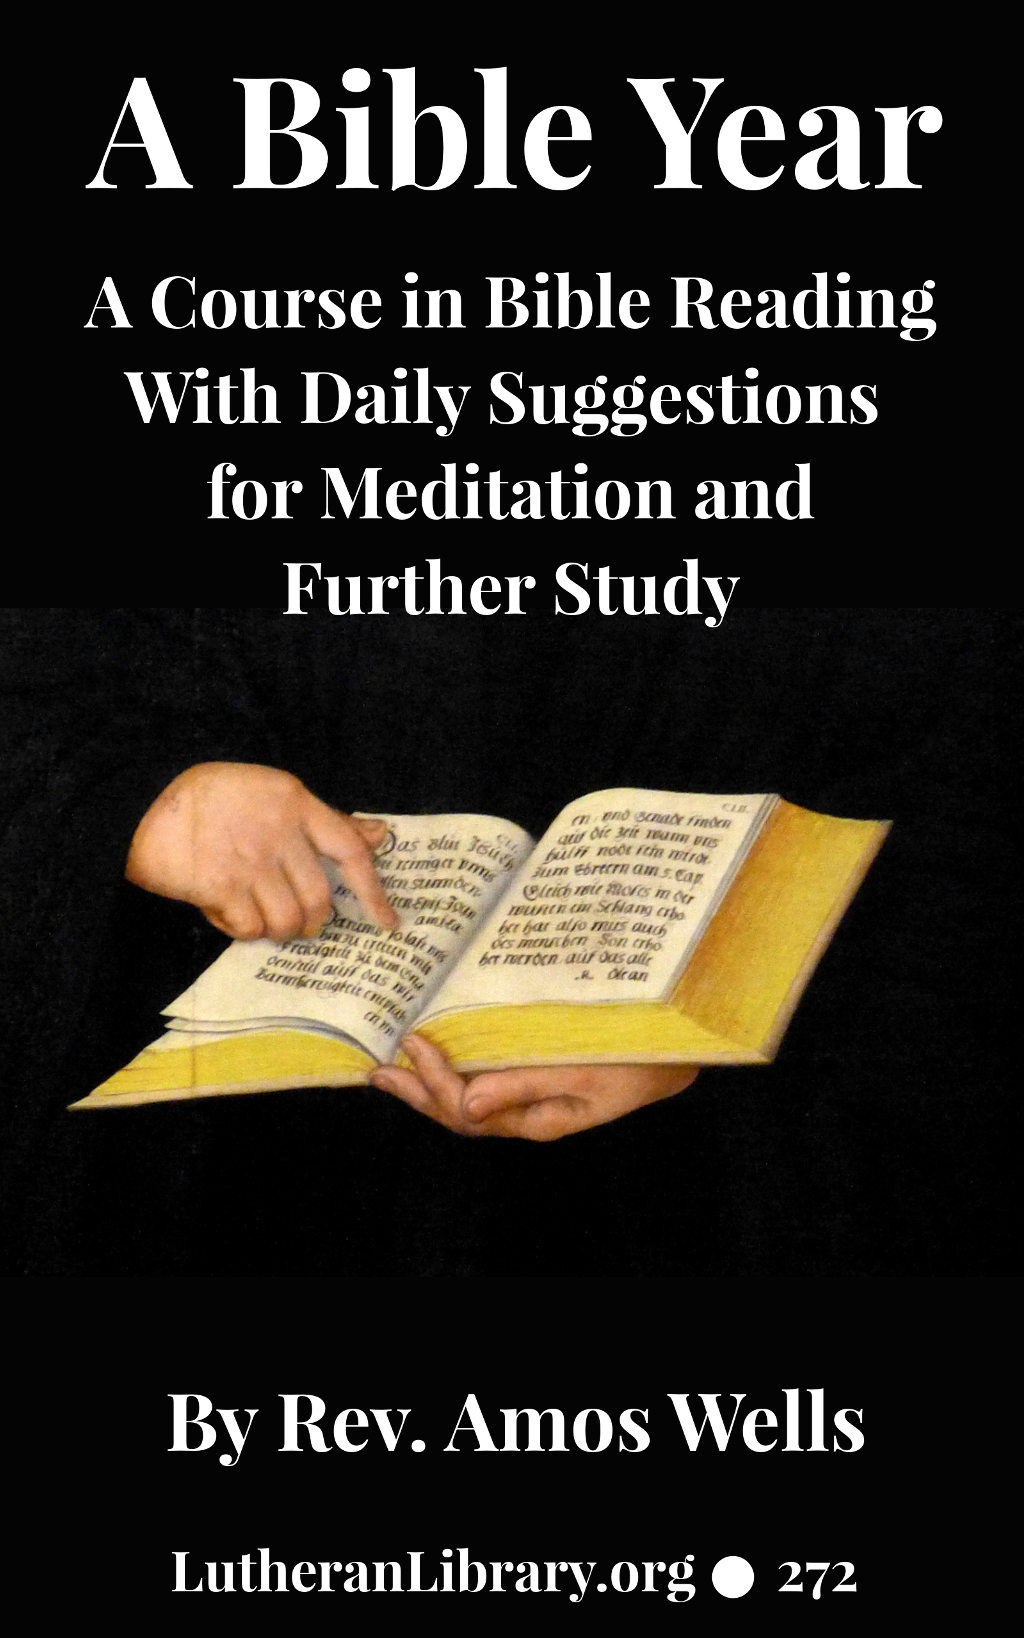 A Bible Year: A Course In Bible-reading, Completing The Entire Bible In One Year; With Daily Suggestions For Meditation And For Further Study by Amos Wells